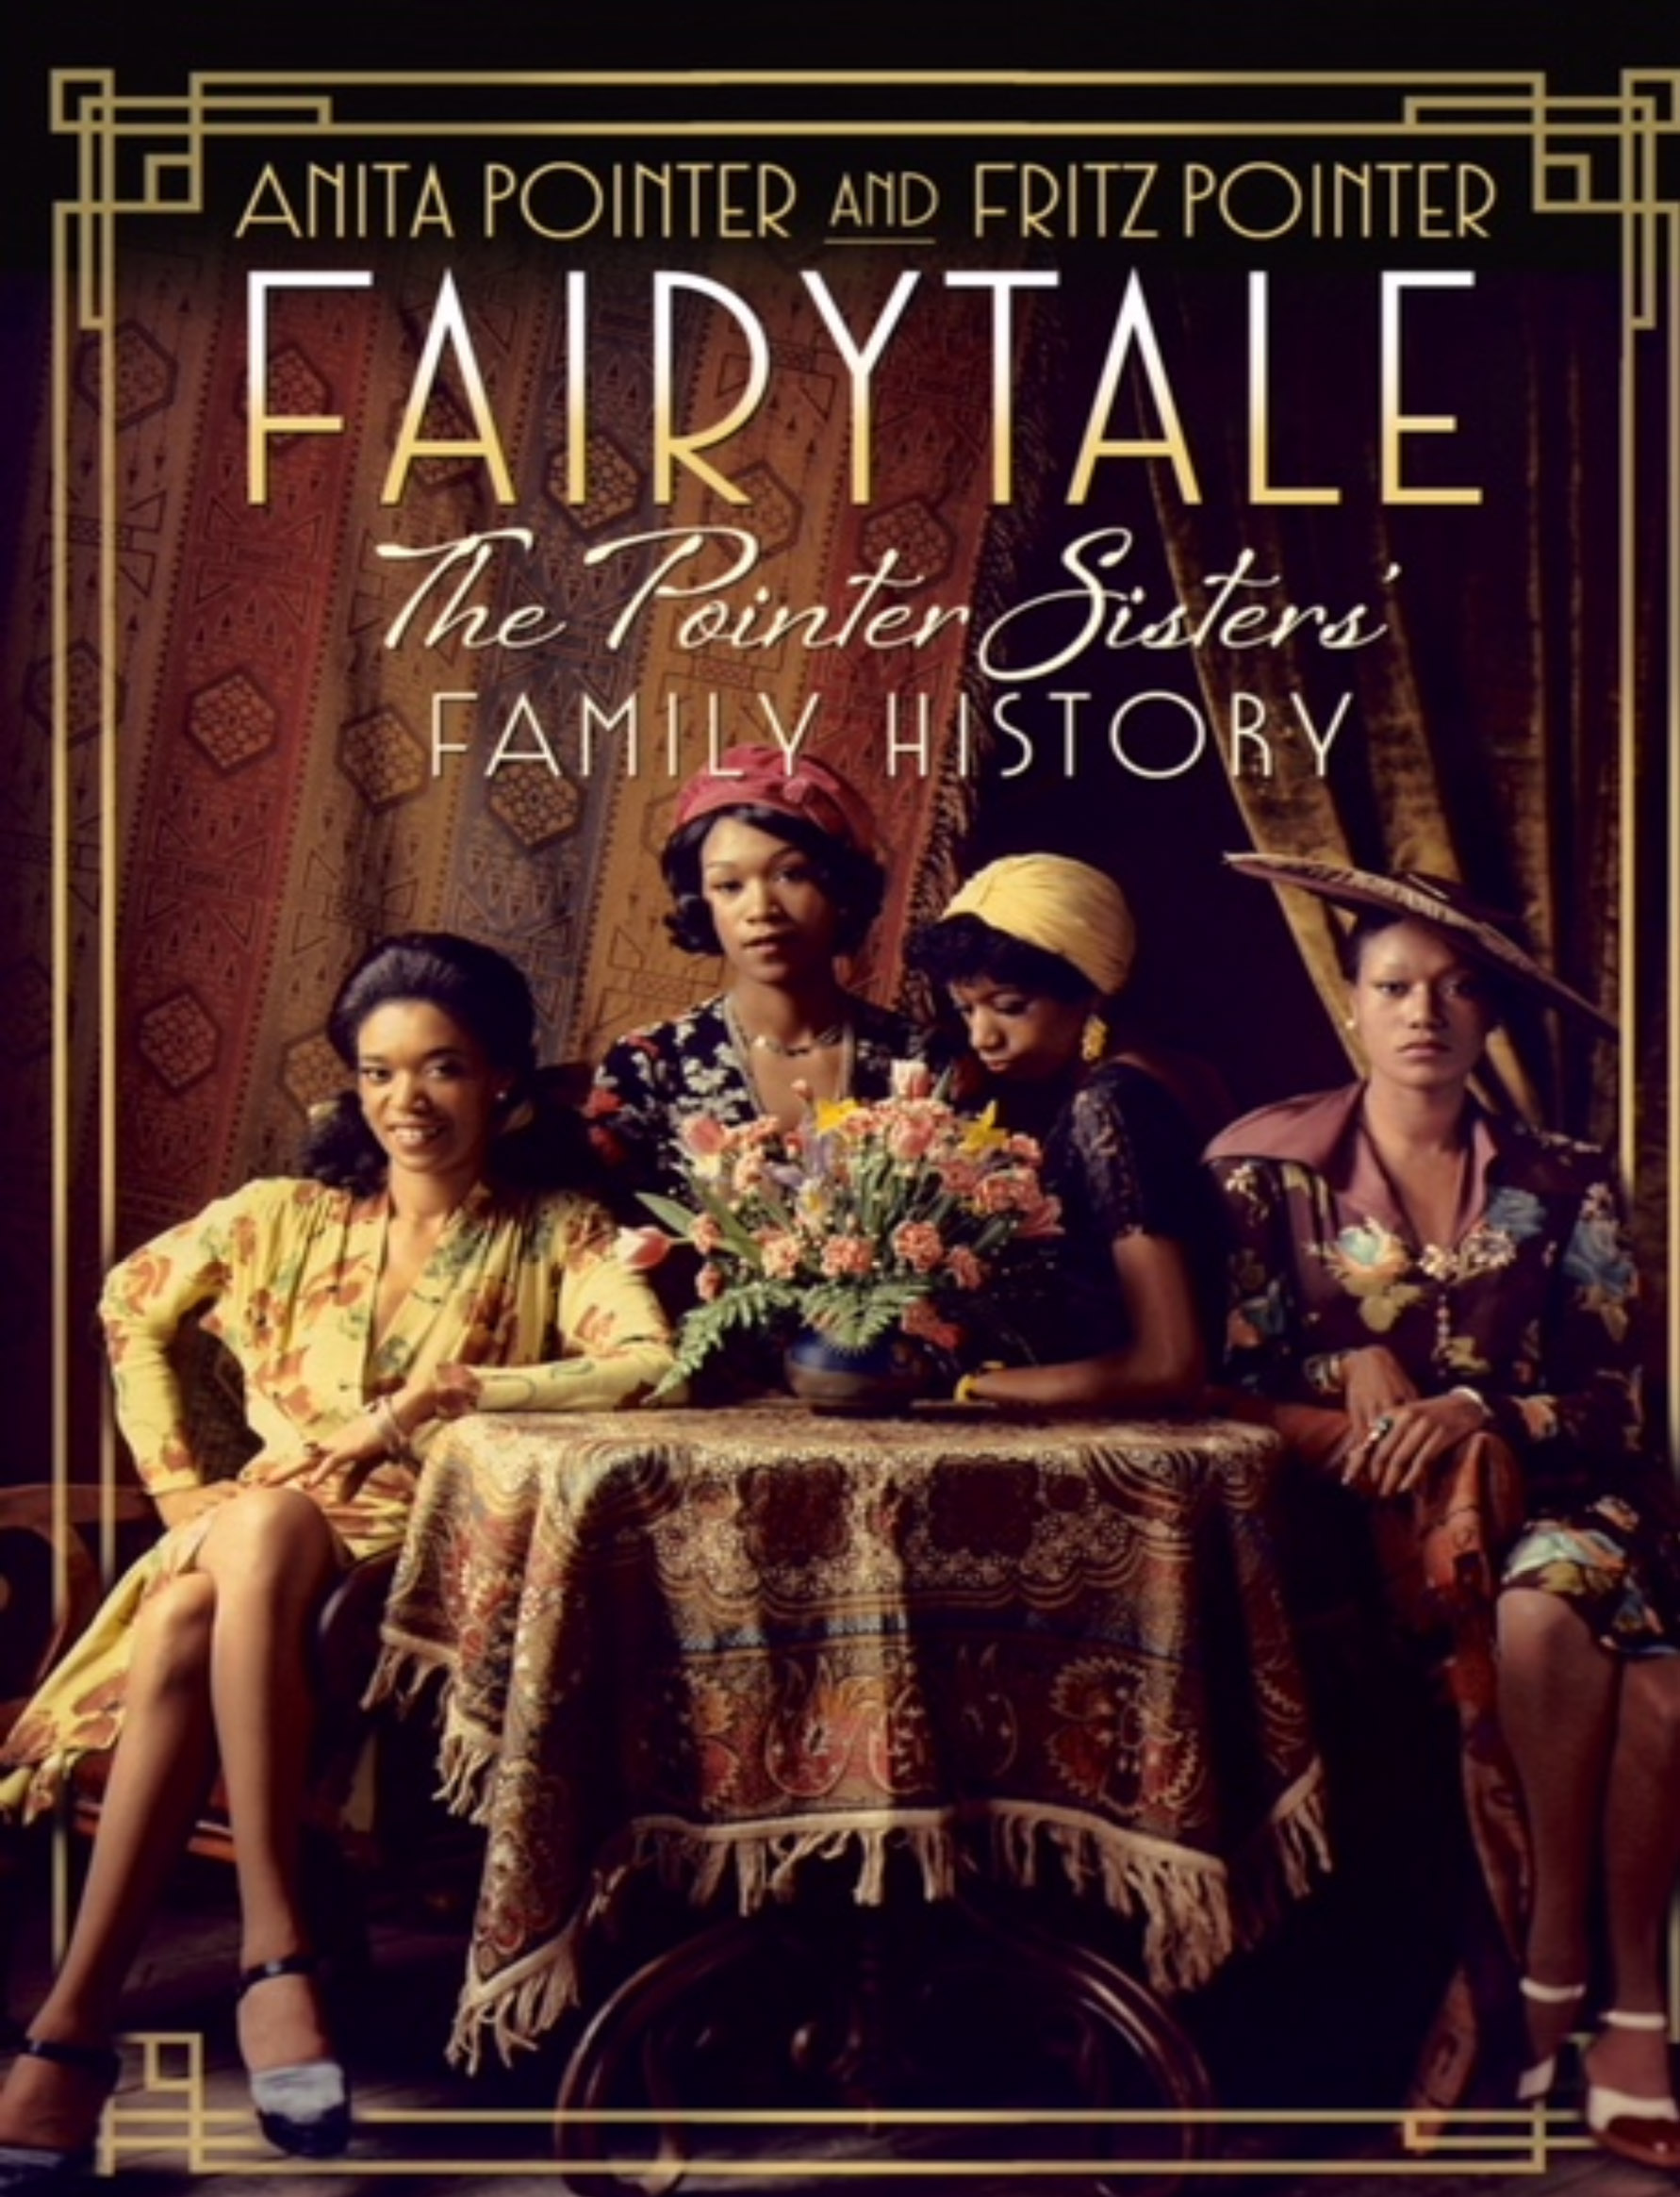 Fairytale, The Pointer Sisters' Family History